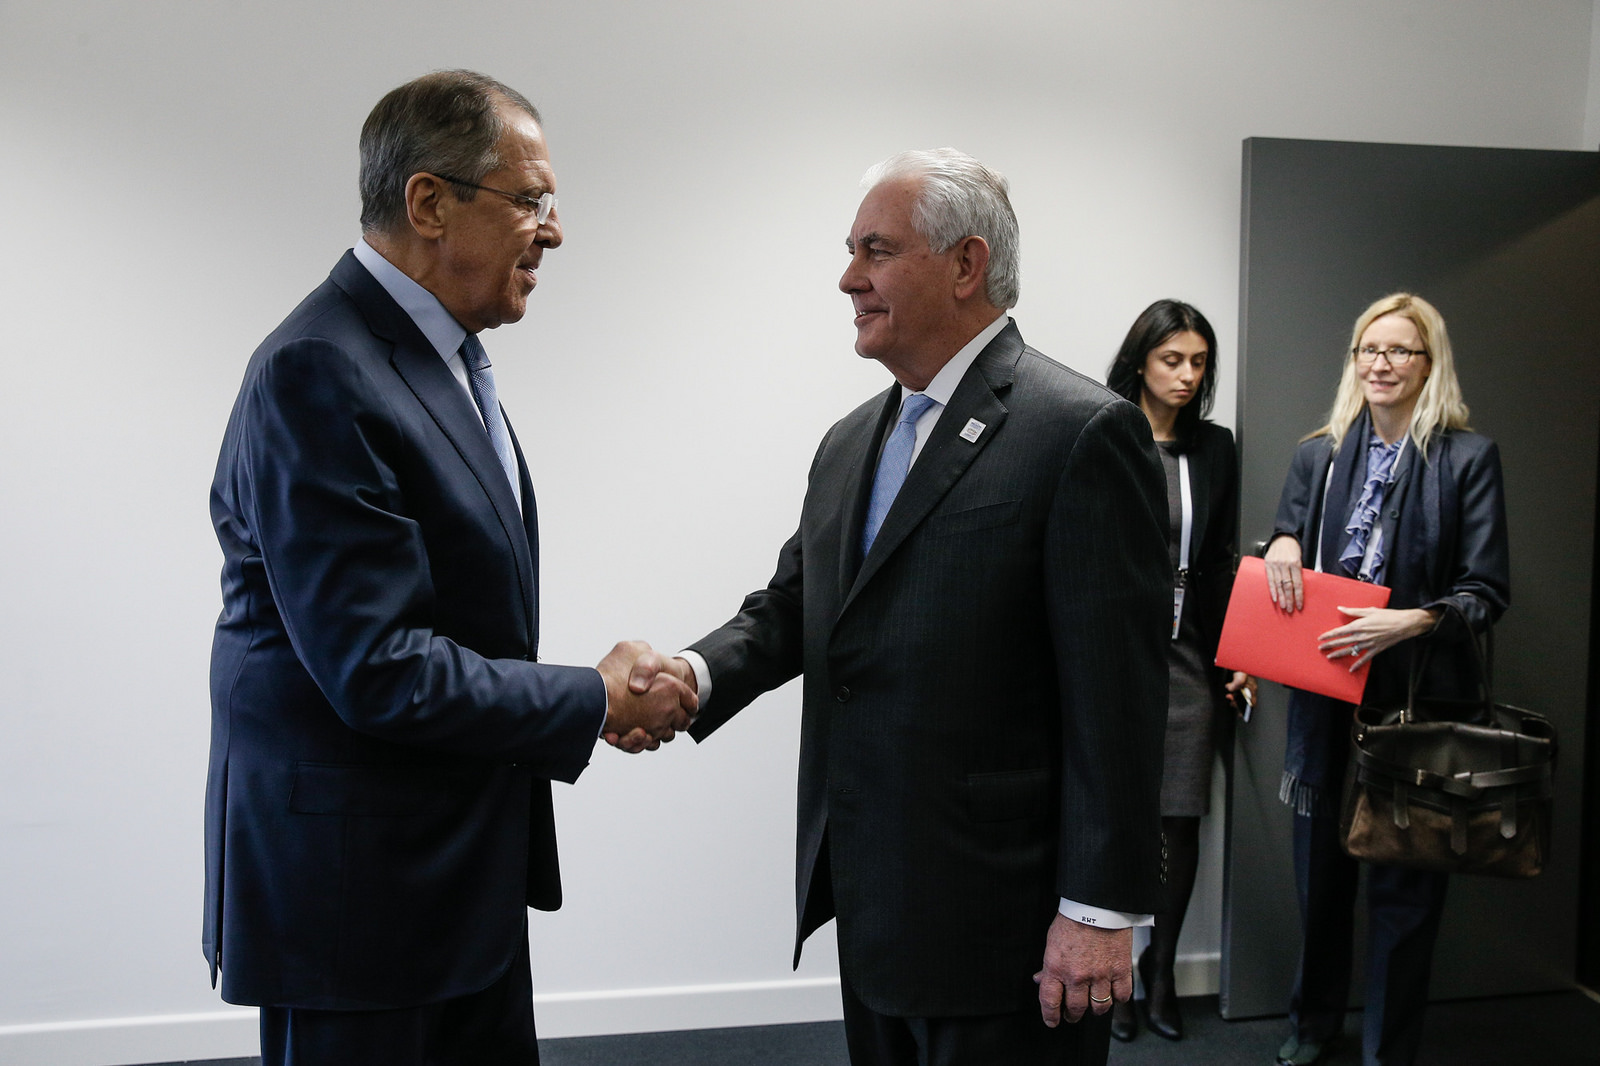 Russian Foreign Minister Sergey Lavrov met with U.S. Secretary of State Rex Tillerson, Bonn, February 16, 2017.